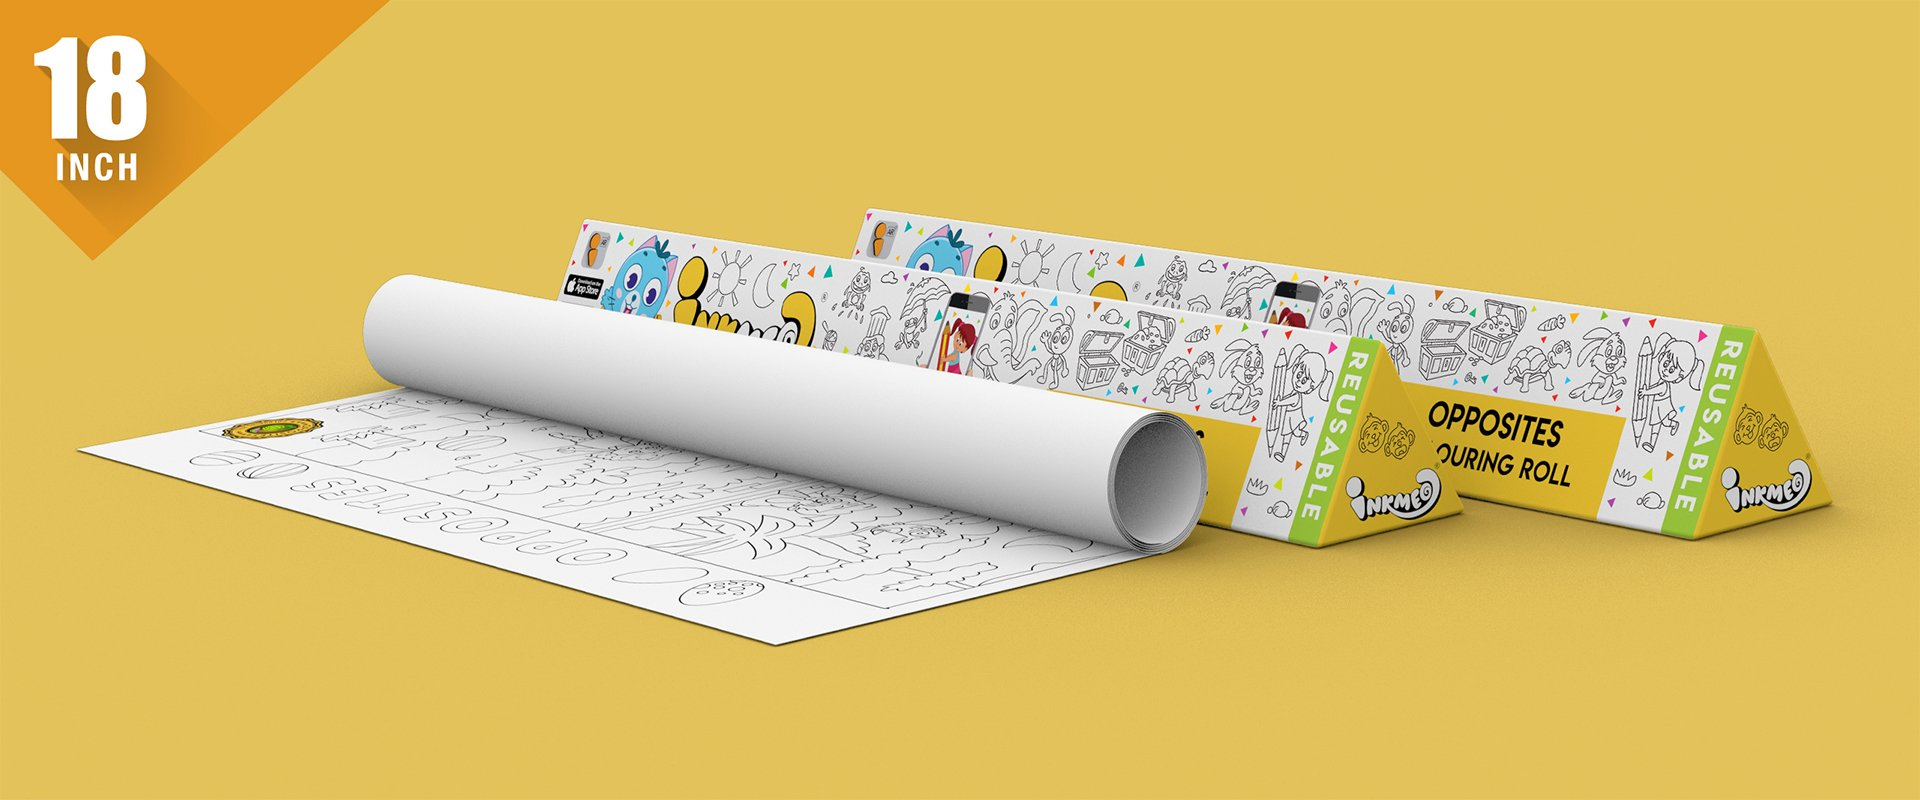 Opposites Reusable Colouring Roll (18 inch) - Inkmeo